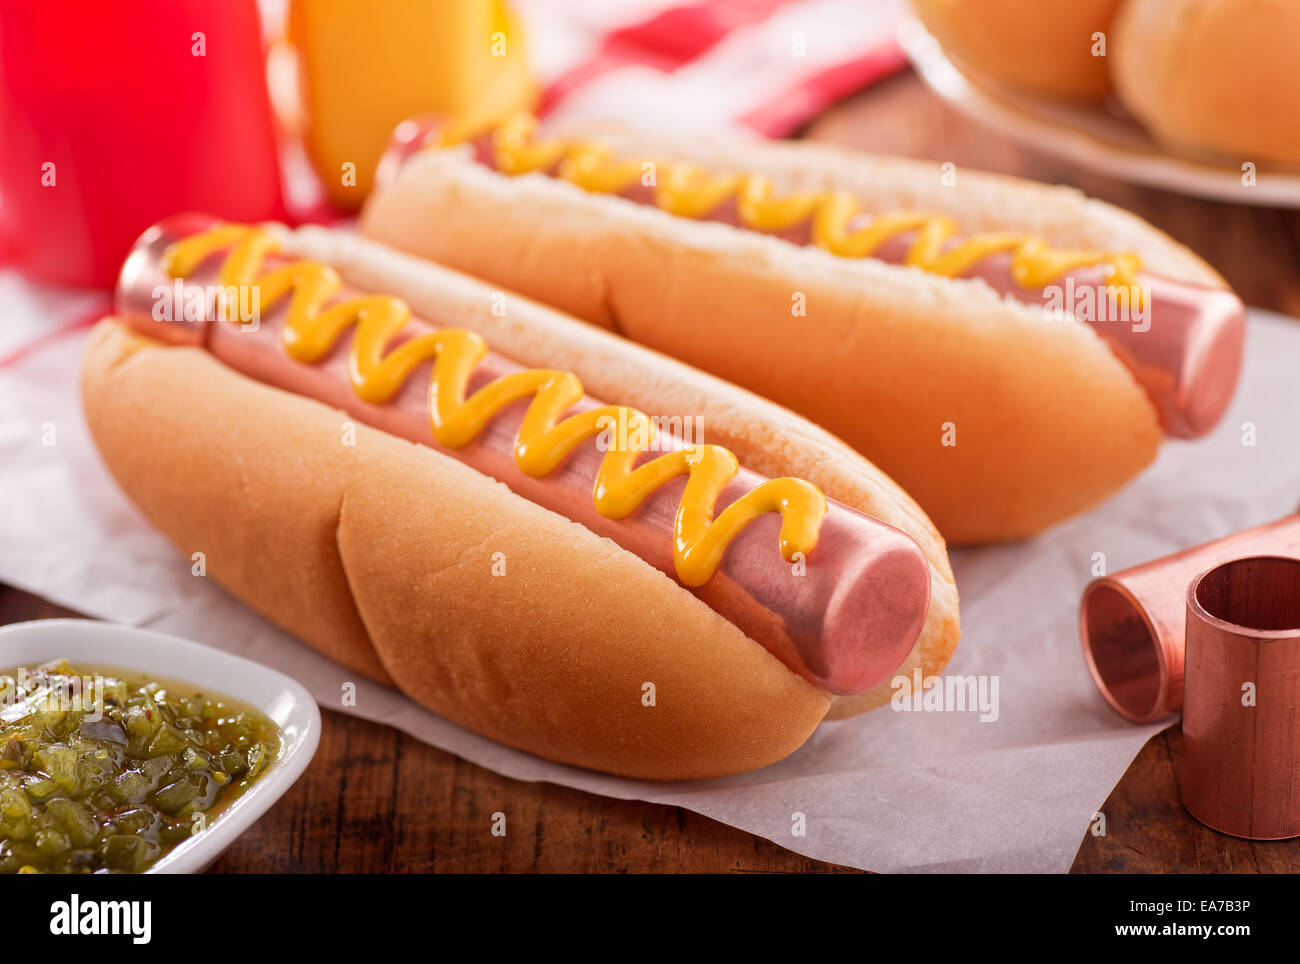 Food humour concept with hot dogs made with copper pipe. - Stock Image